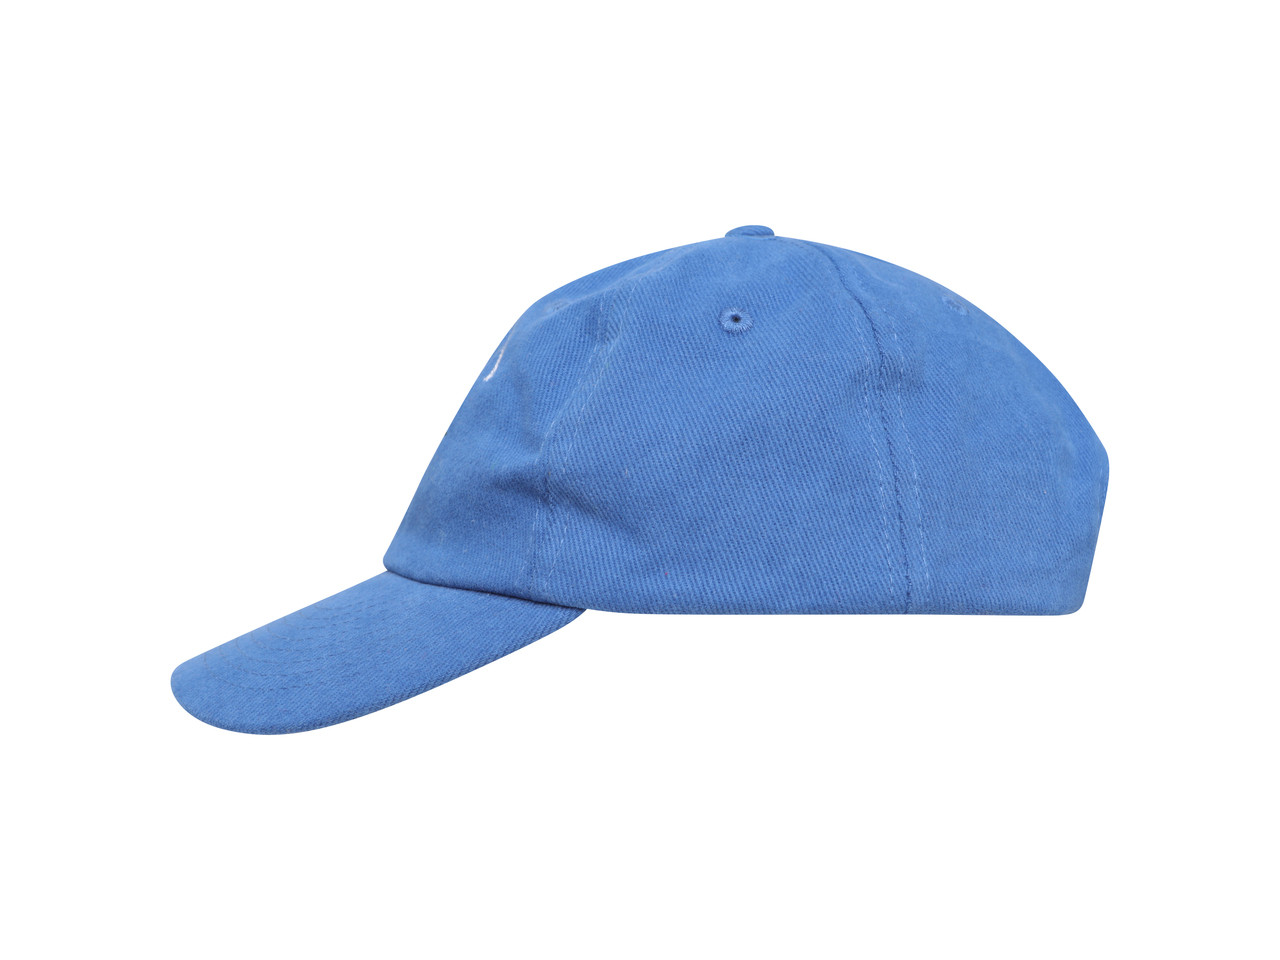 Royal Blue Cap With Paradise Island Parrot Embroidery